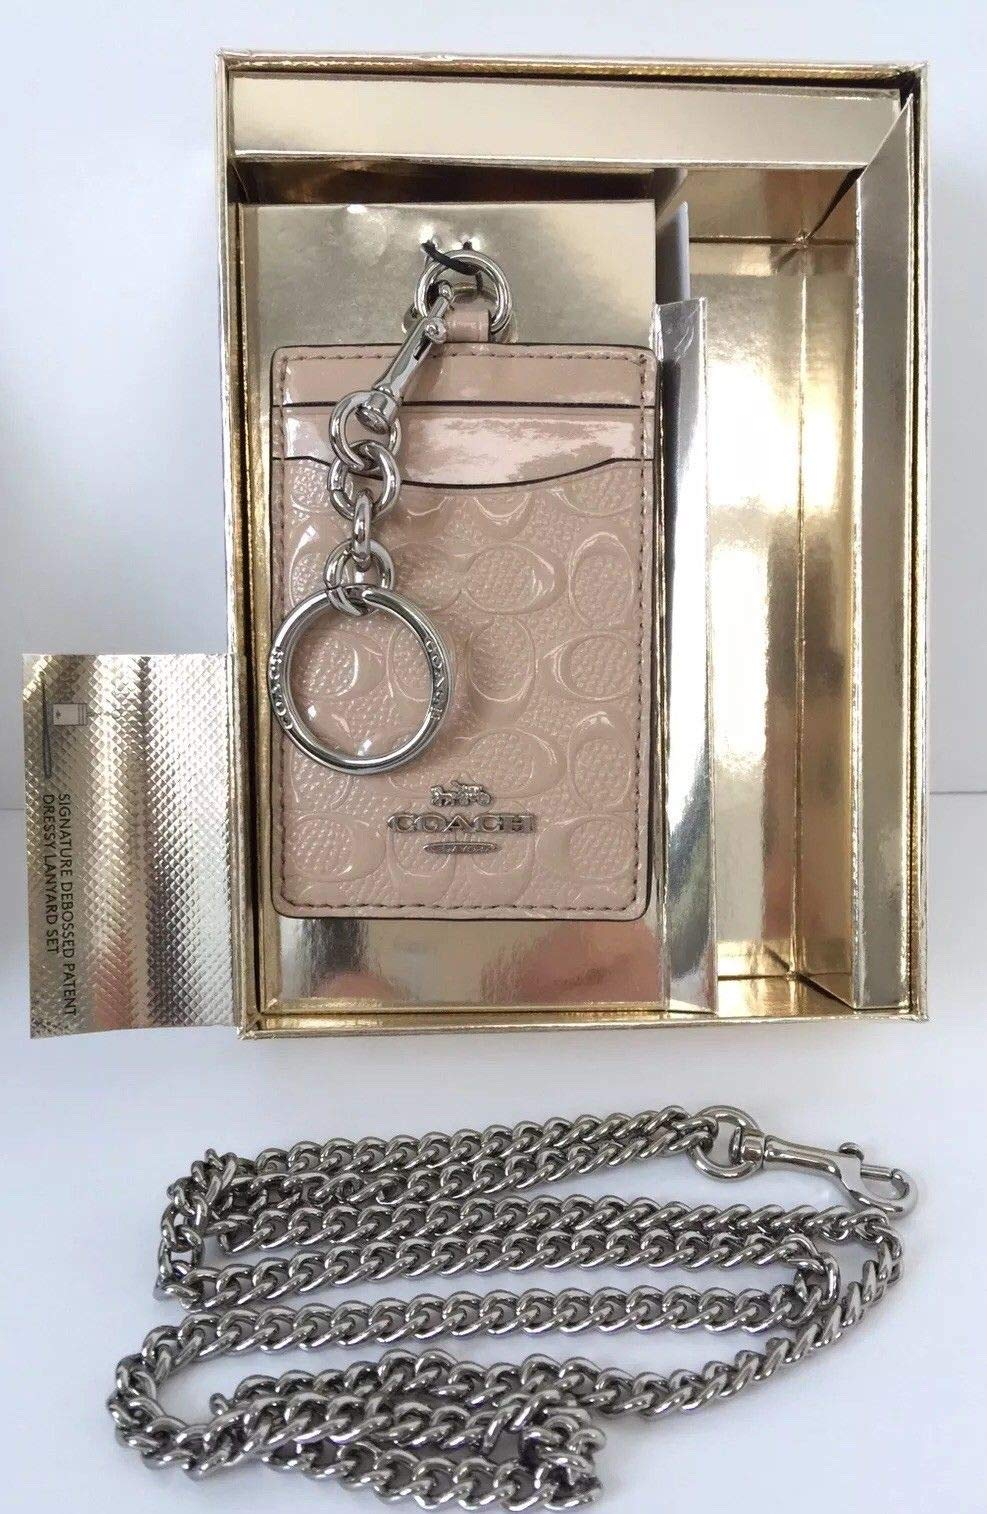 Coach Women's Boxed ID Lanyard/Card Case Set in Signature Patent Leather (Platinum/Silver) by COACH (Image #3)